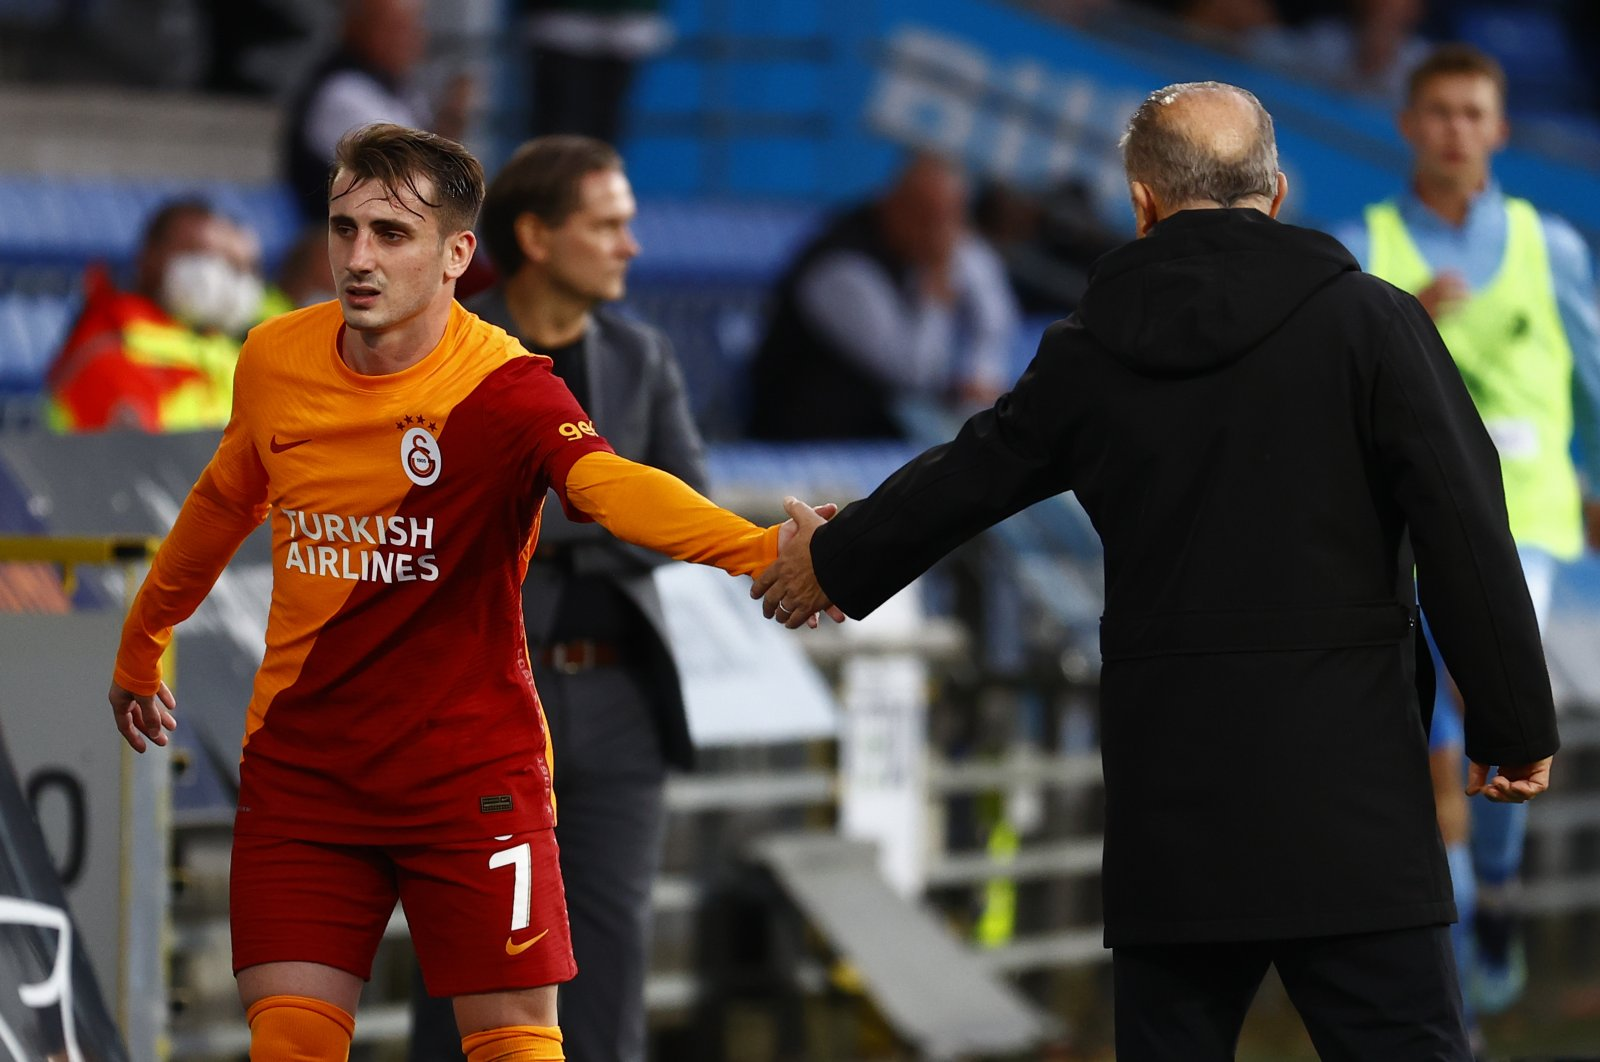 Galatasaray's Kerem Aktürkoğlu shakes coach Fatih Terim's hand after leaving the pitch at the Randers Stadion in Denmark during the UEFA Europa League playoff match against Randers on Aug. 19, 2021 (AA Photo)